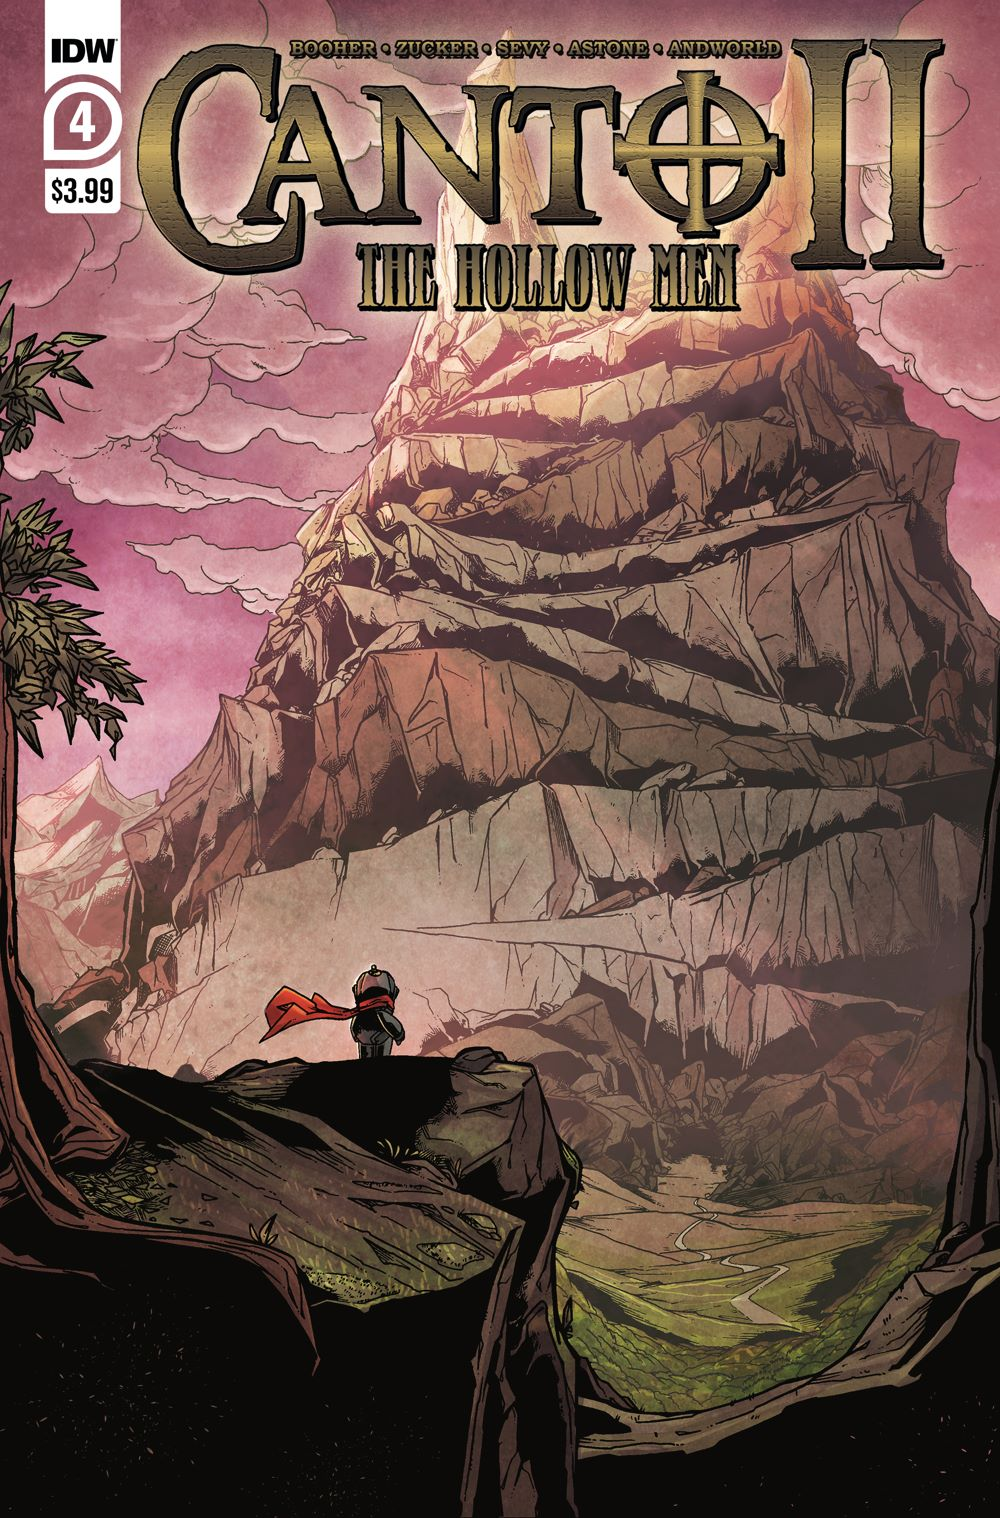 Canto-HM04_cvrA ComicList Previews: CANTO II THE HOLLOW MEN #4 (OF 5)